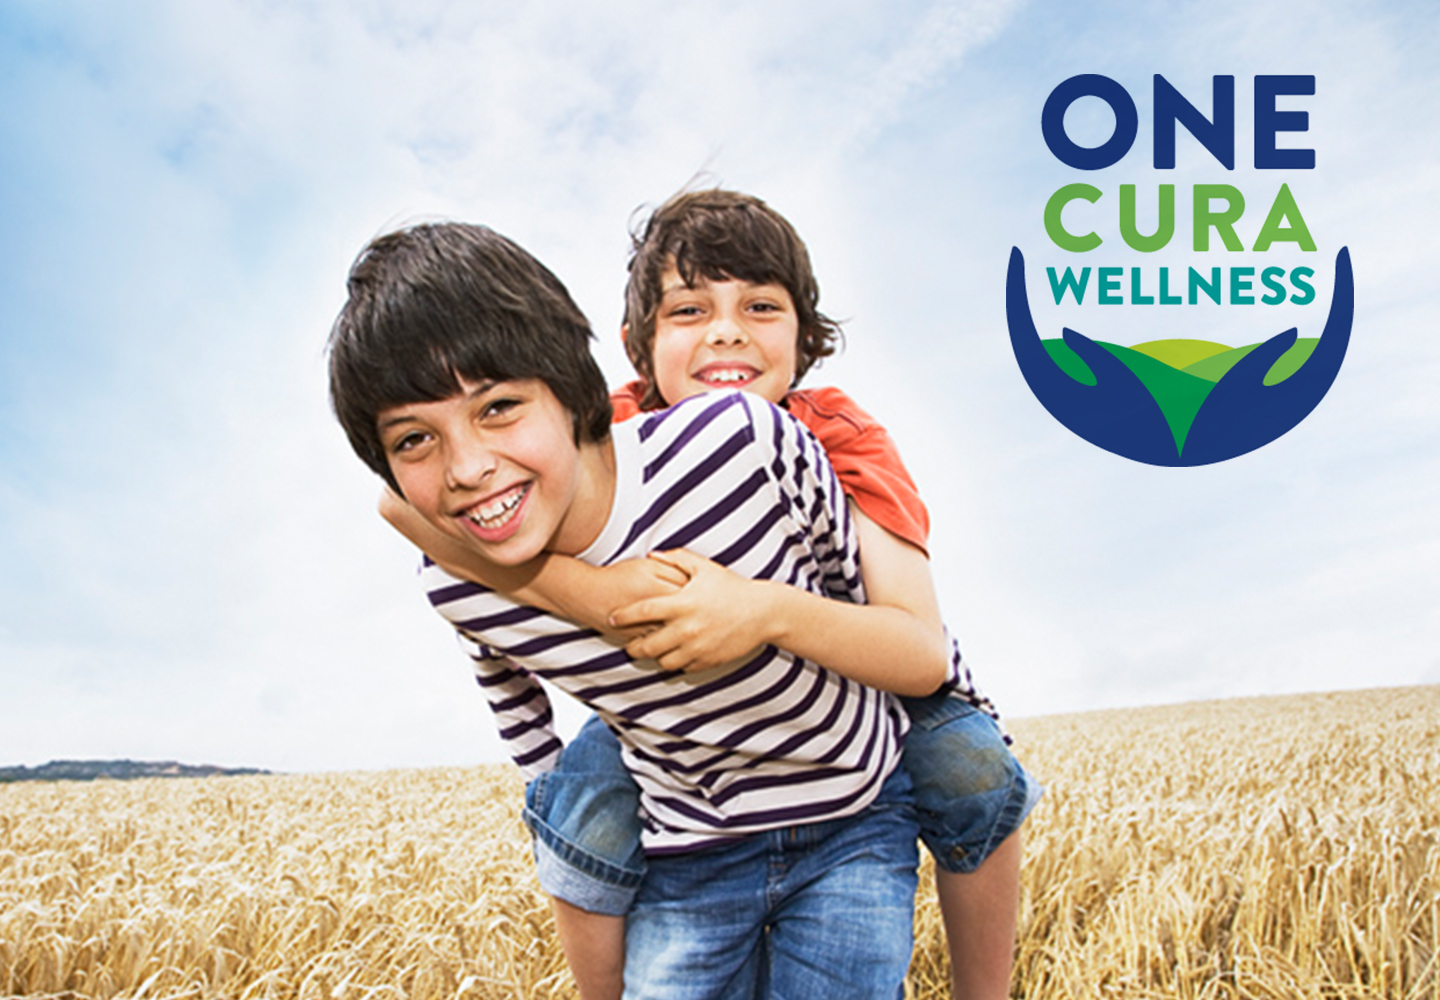 One Cura Wellness